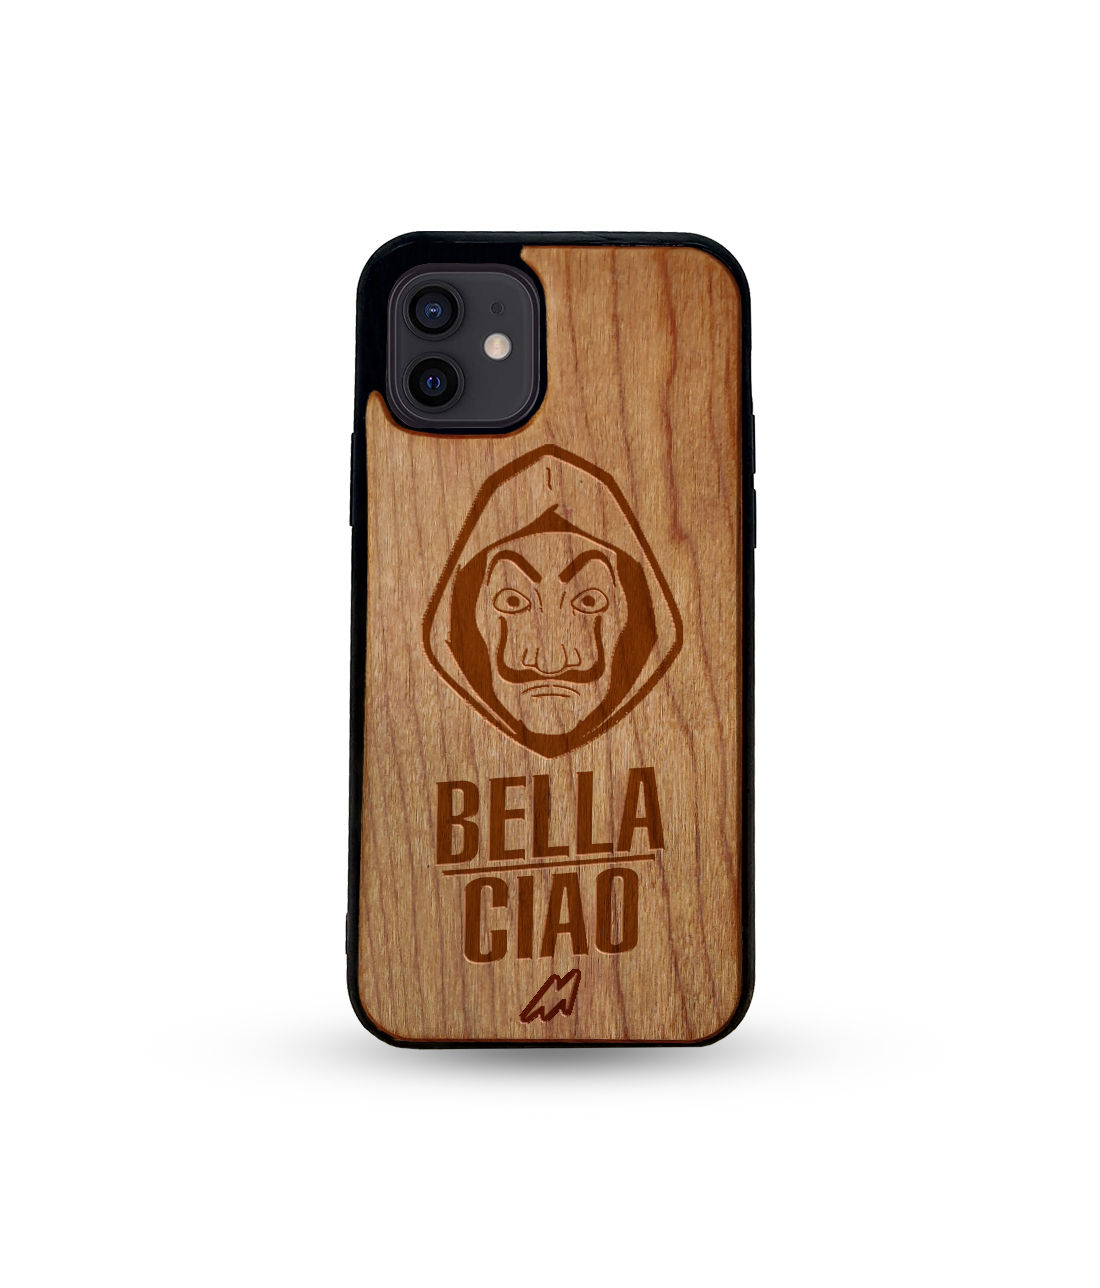 Bella Ciao - Honey Maple Wooden Phone Case for iPhone 12